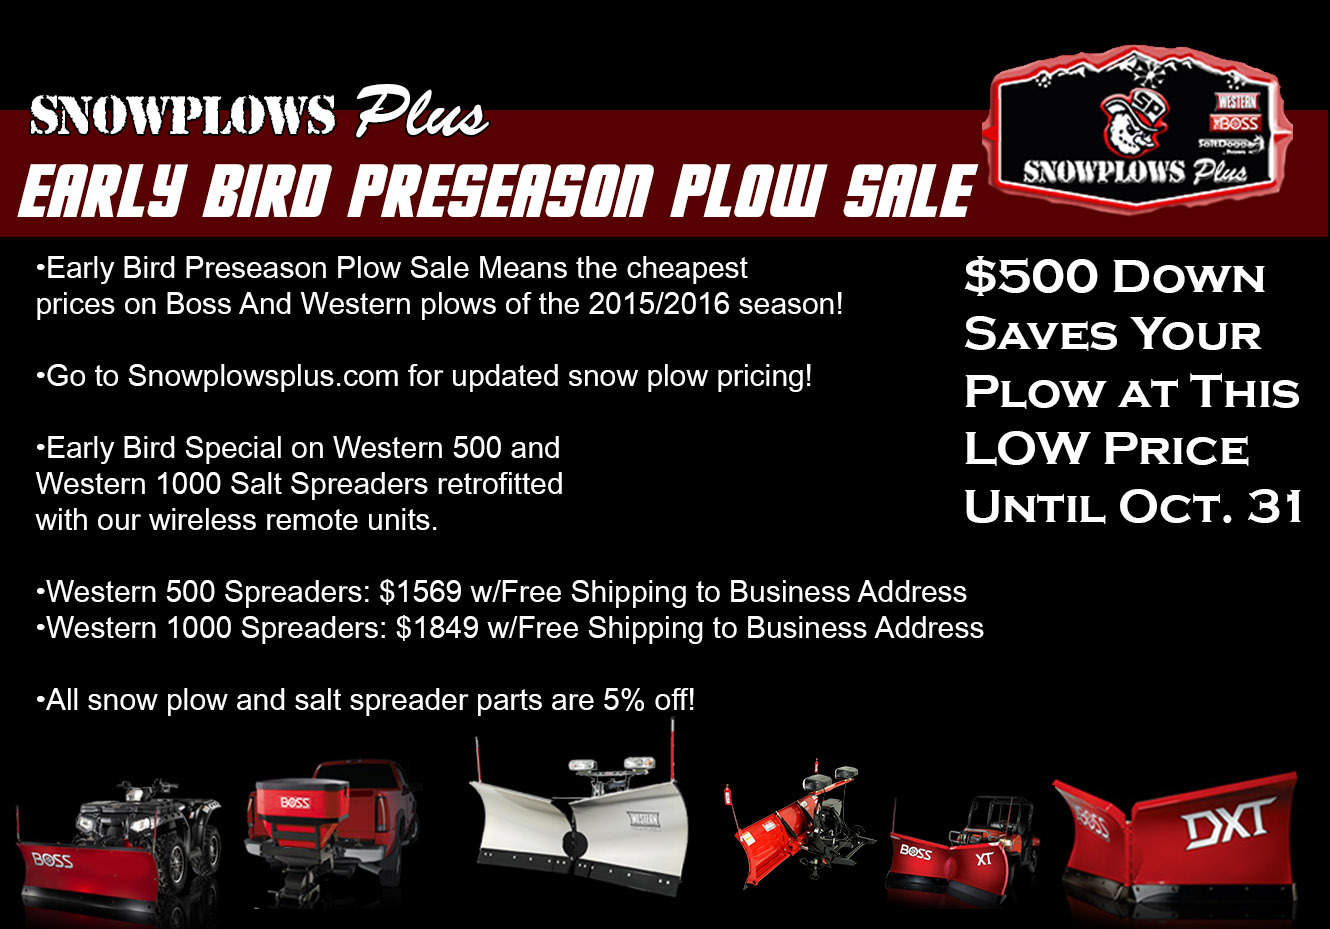 snow plow pricing, snow plow, western snow plow pricing, boss snow plow pricing, boss plow pricing, western 500 tailgate spreader, western 1000 tailgate spreader